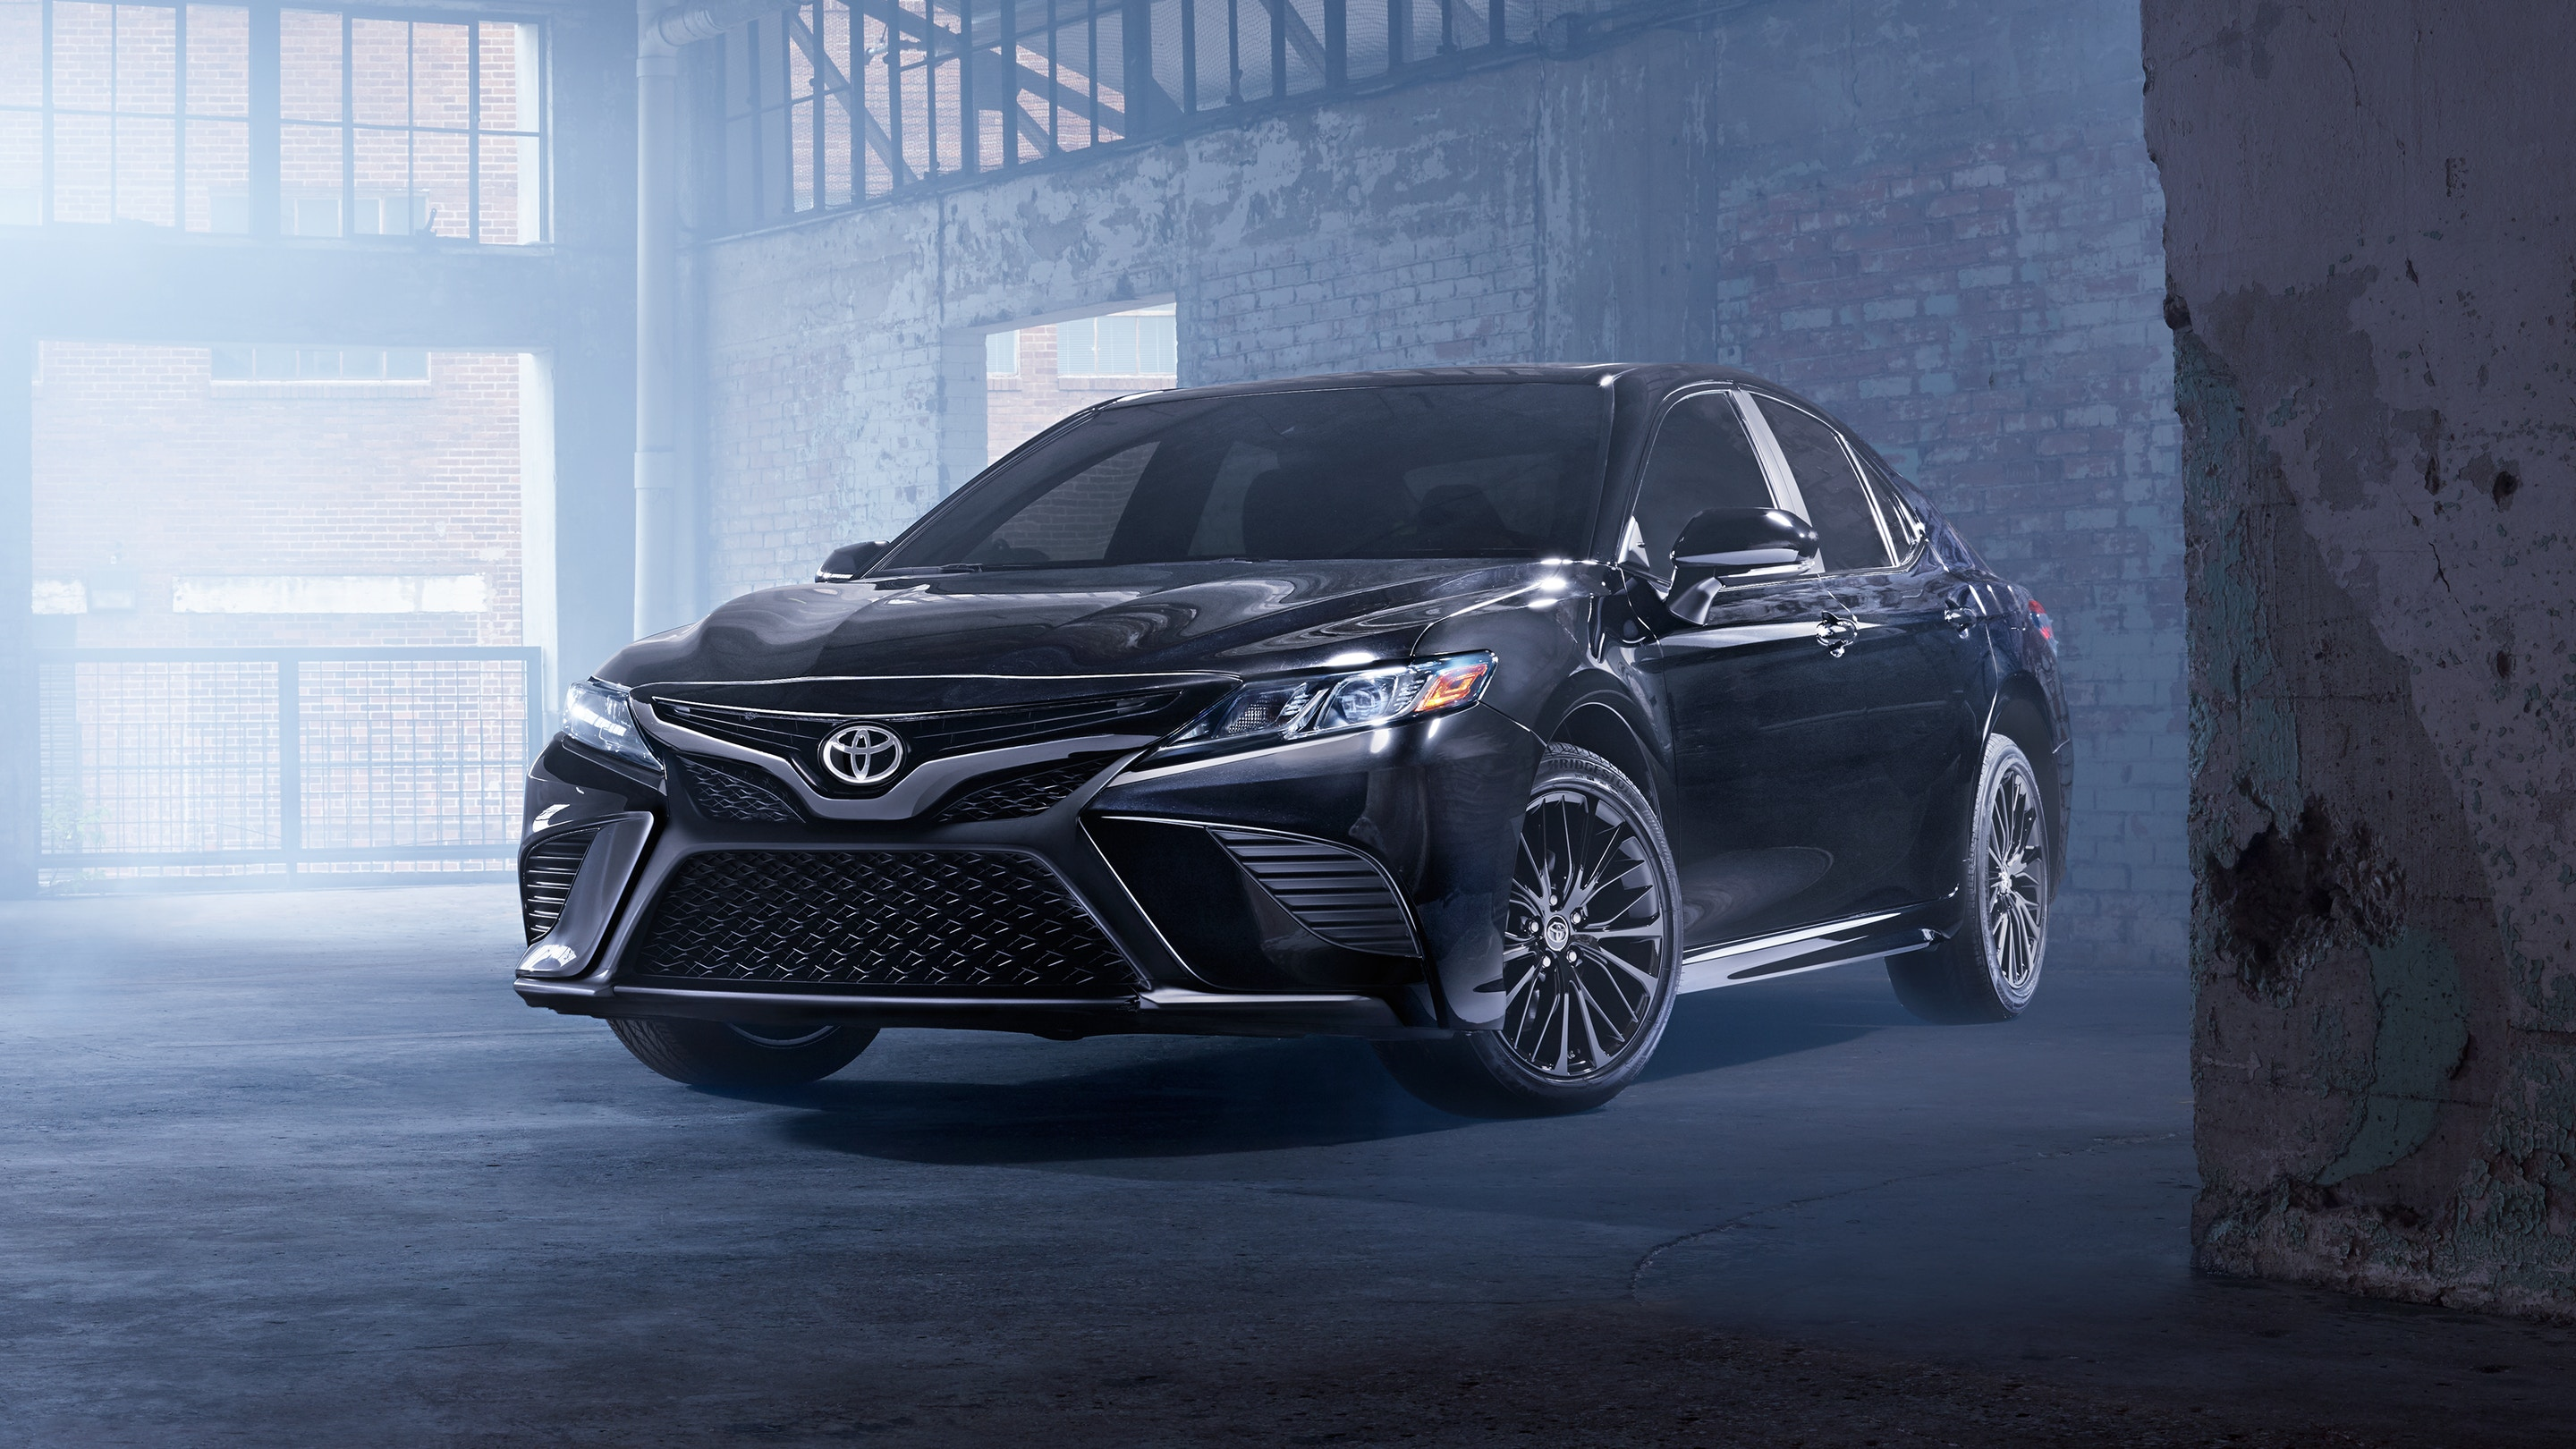 2020 Toyota Camry vs 2020 Honda Accord near Skiatook, OK